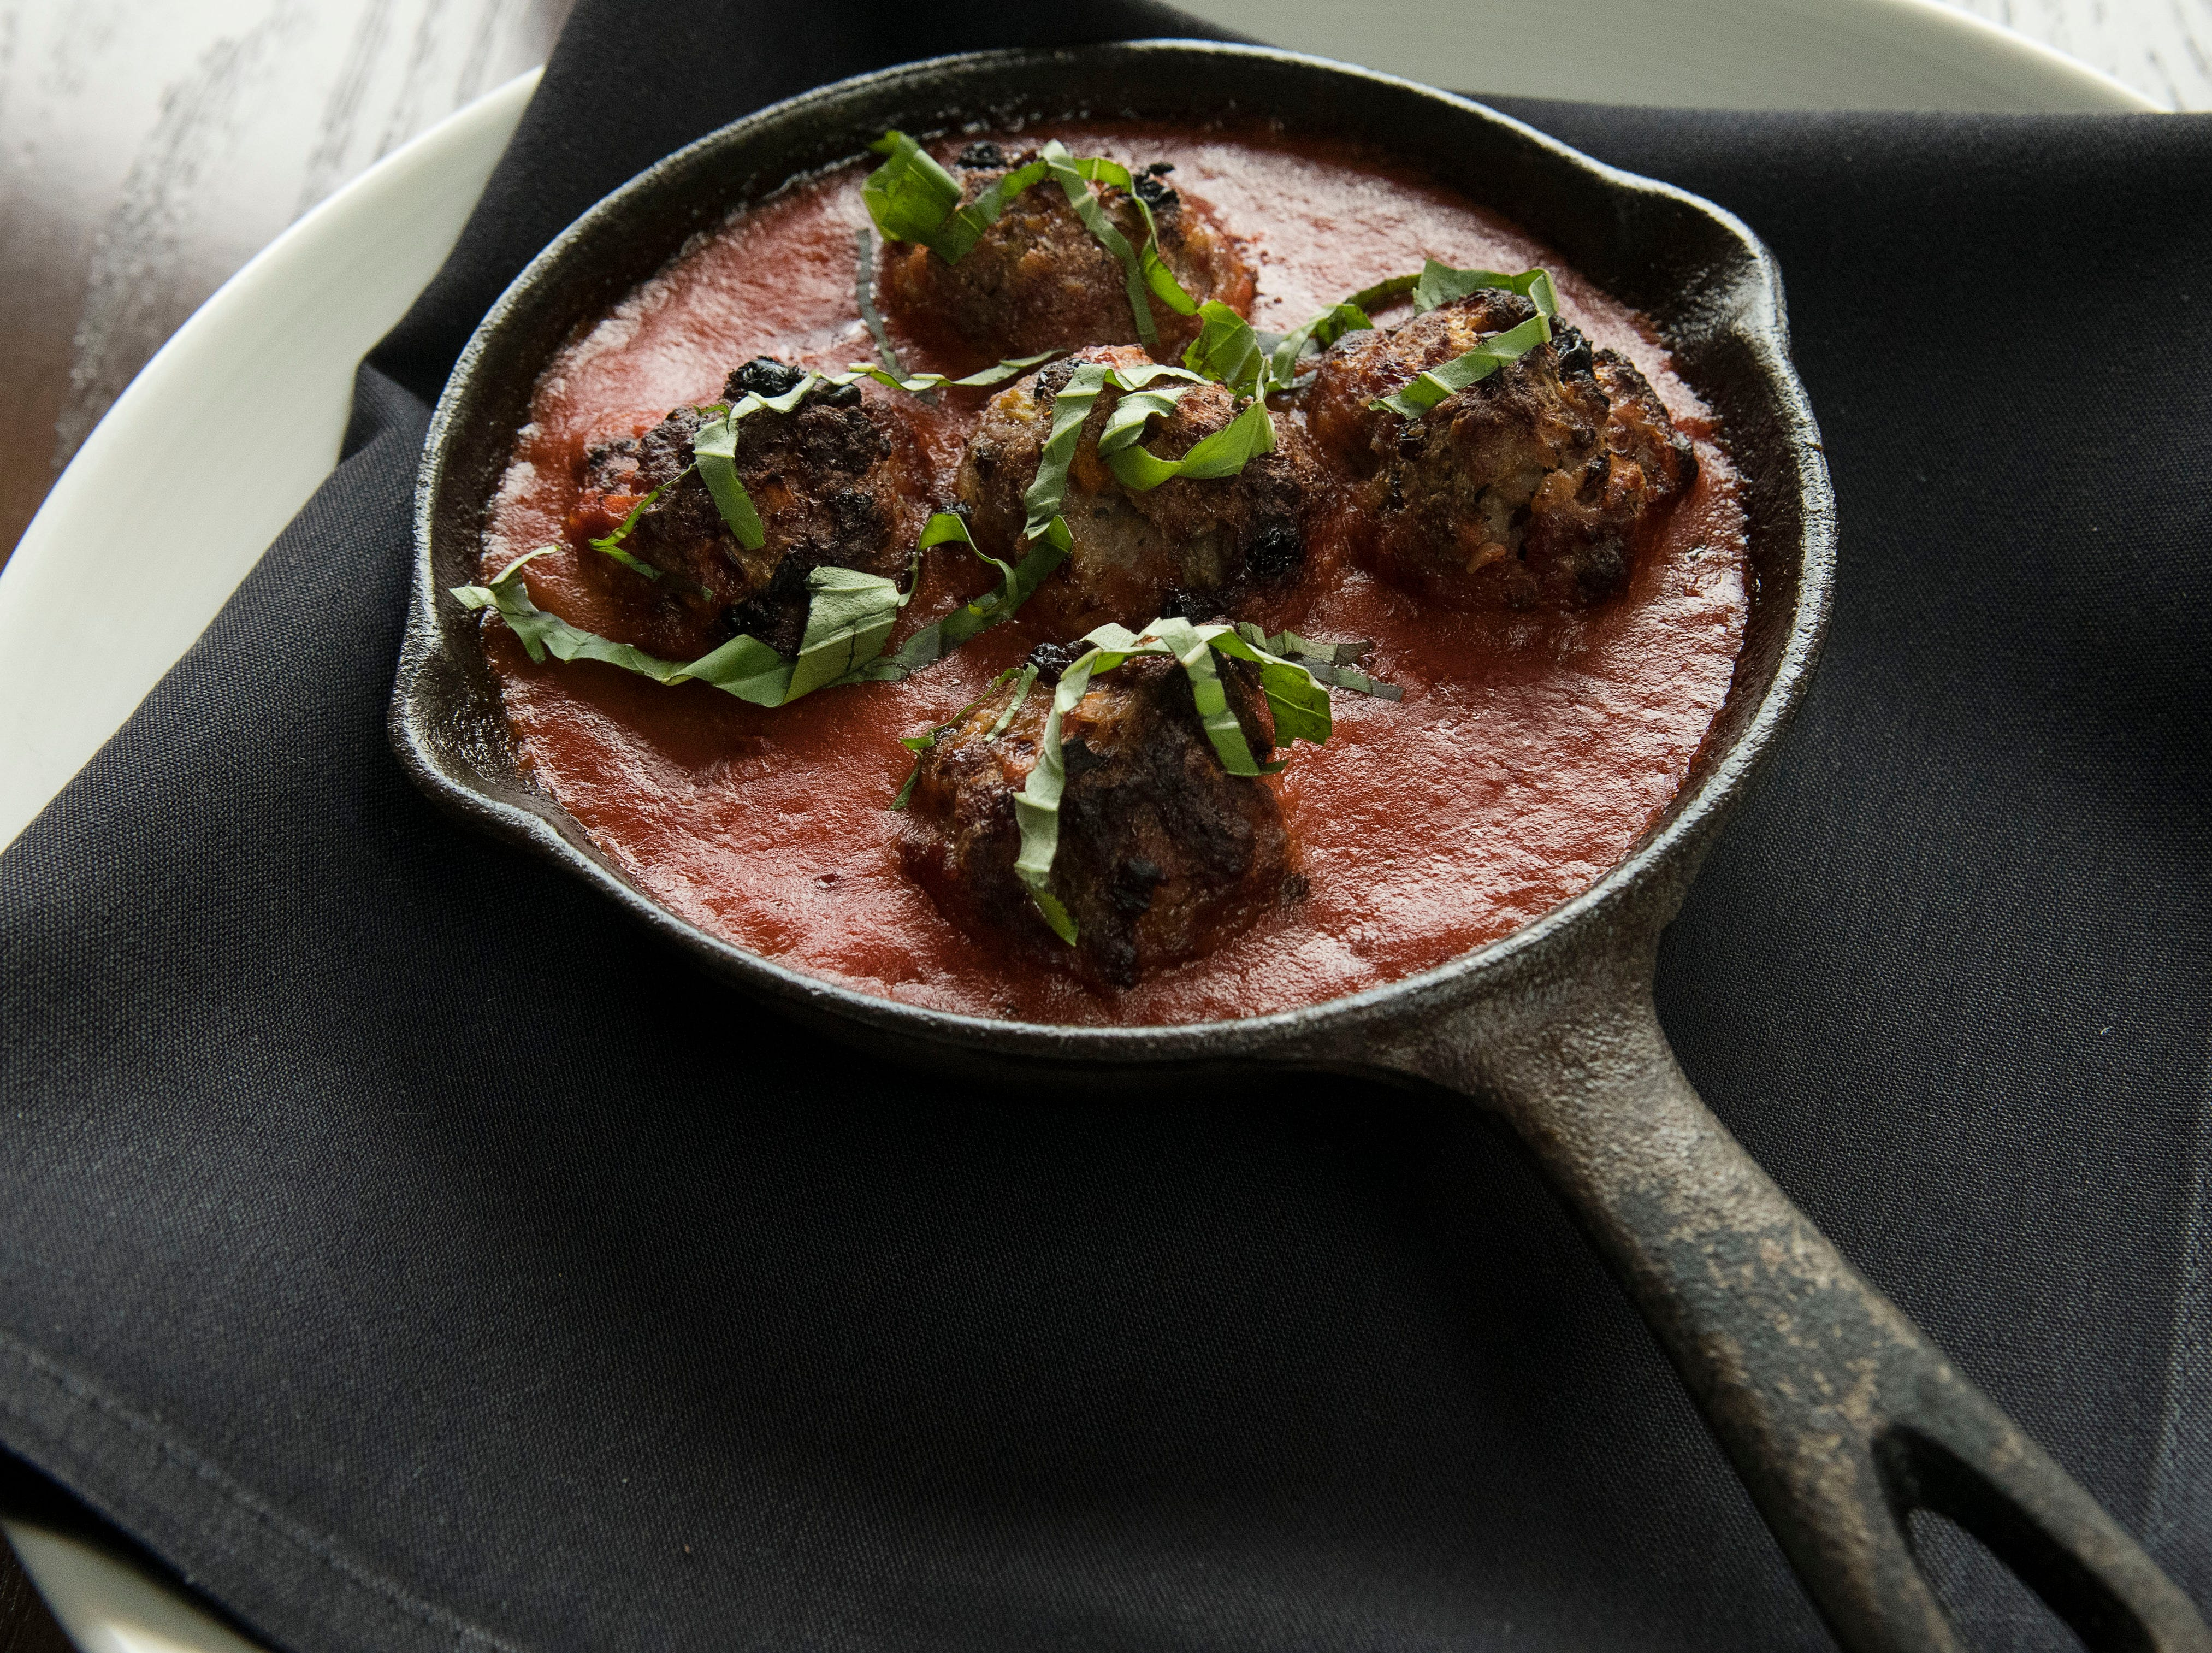 Meatballs prepared by head chef Carmelo Gabriele at Sarino on Wednesday, August 29, 2018.